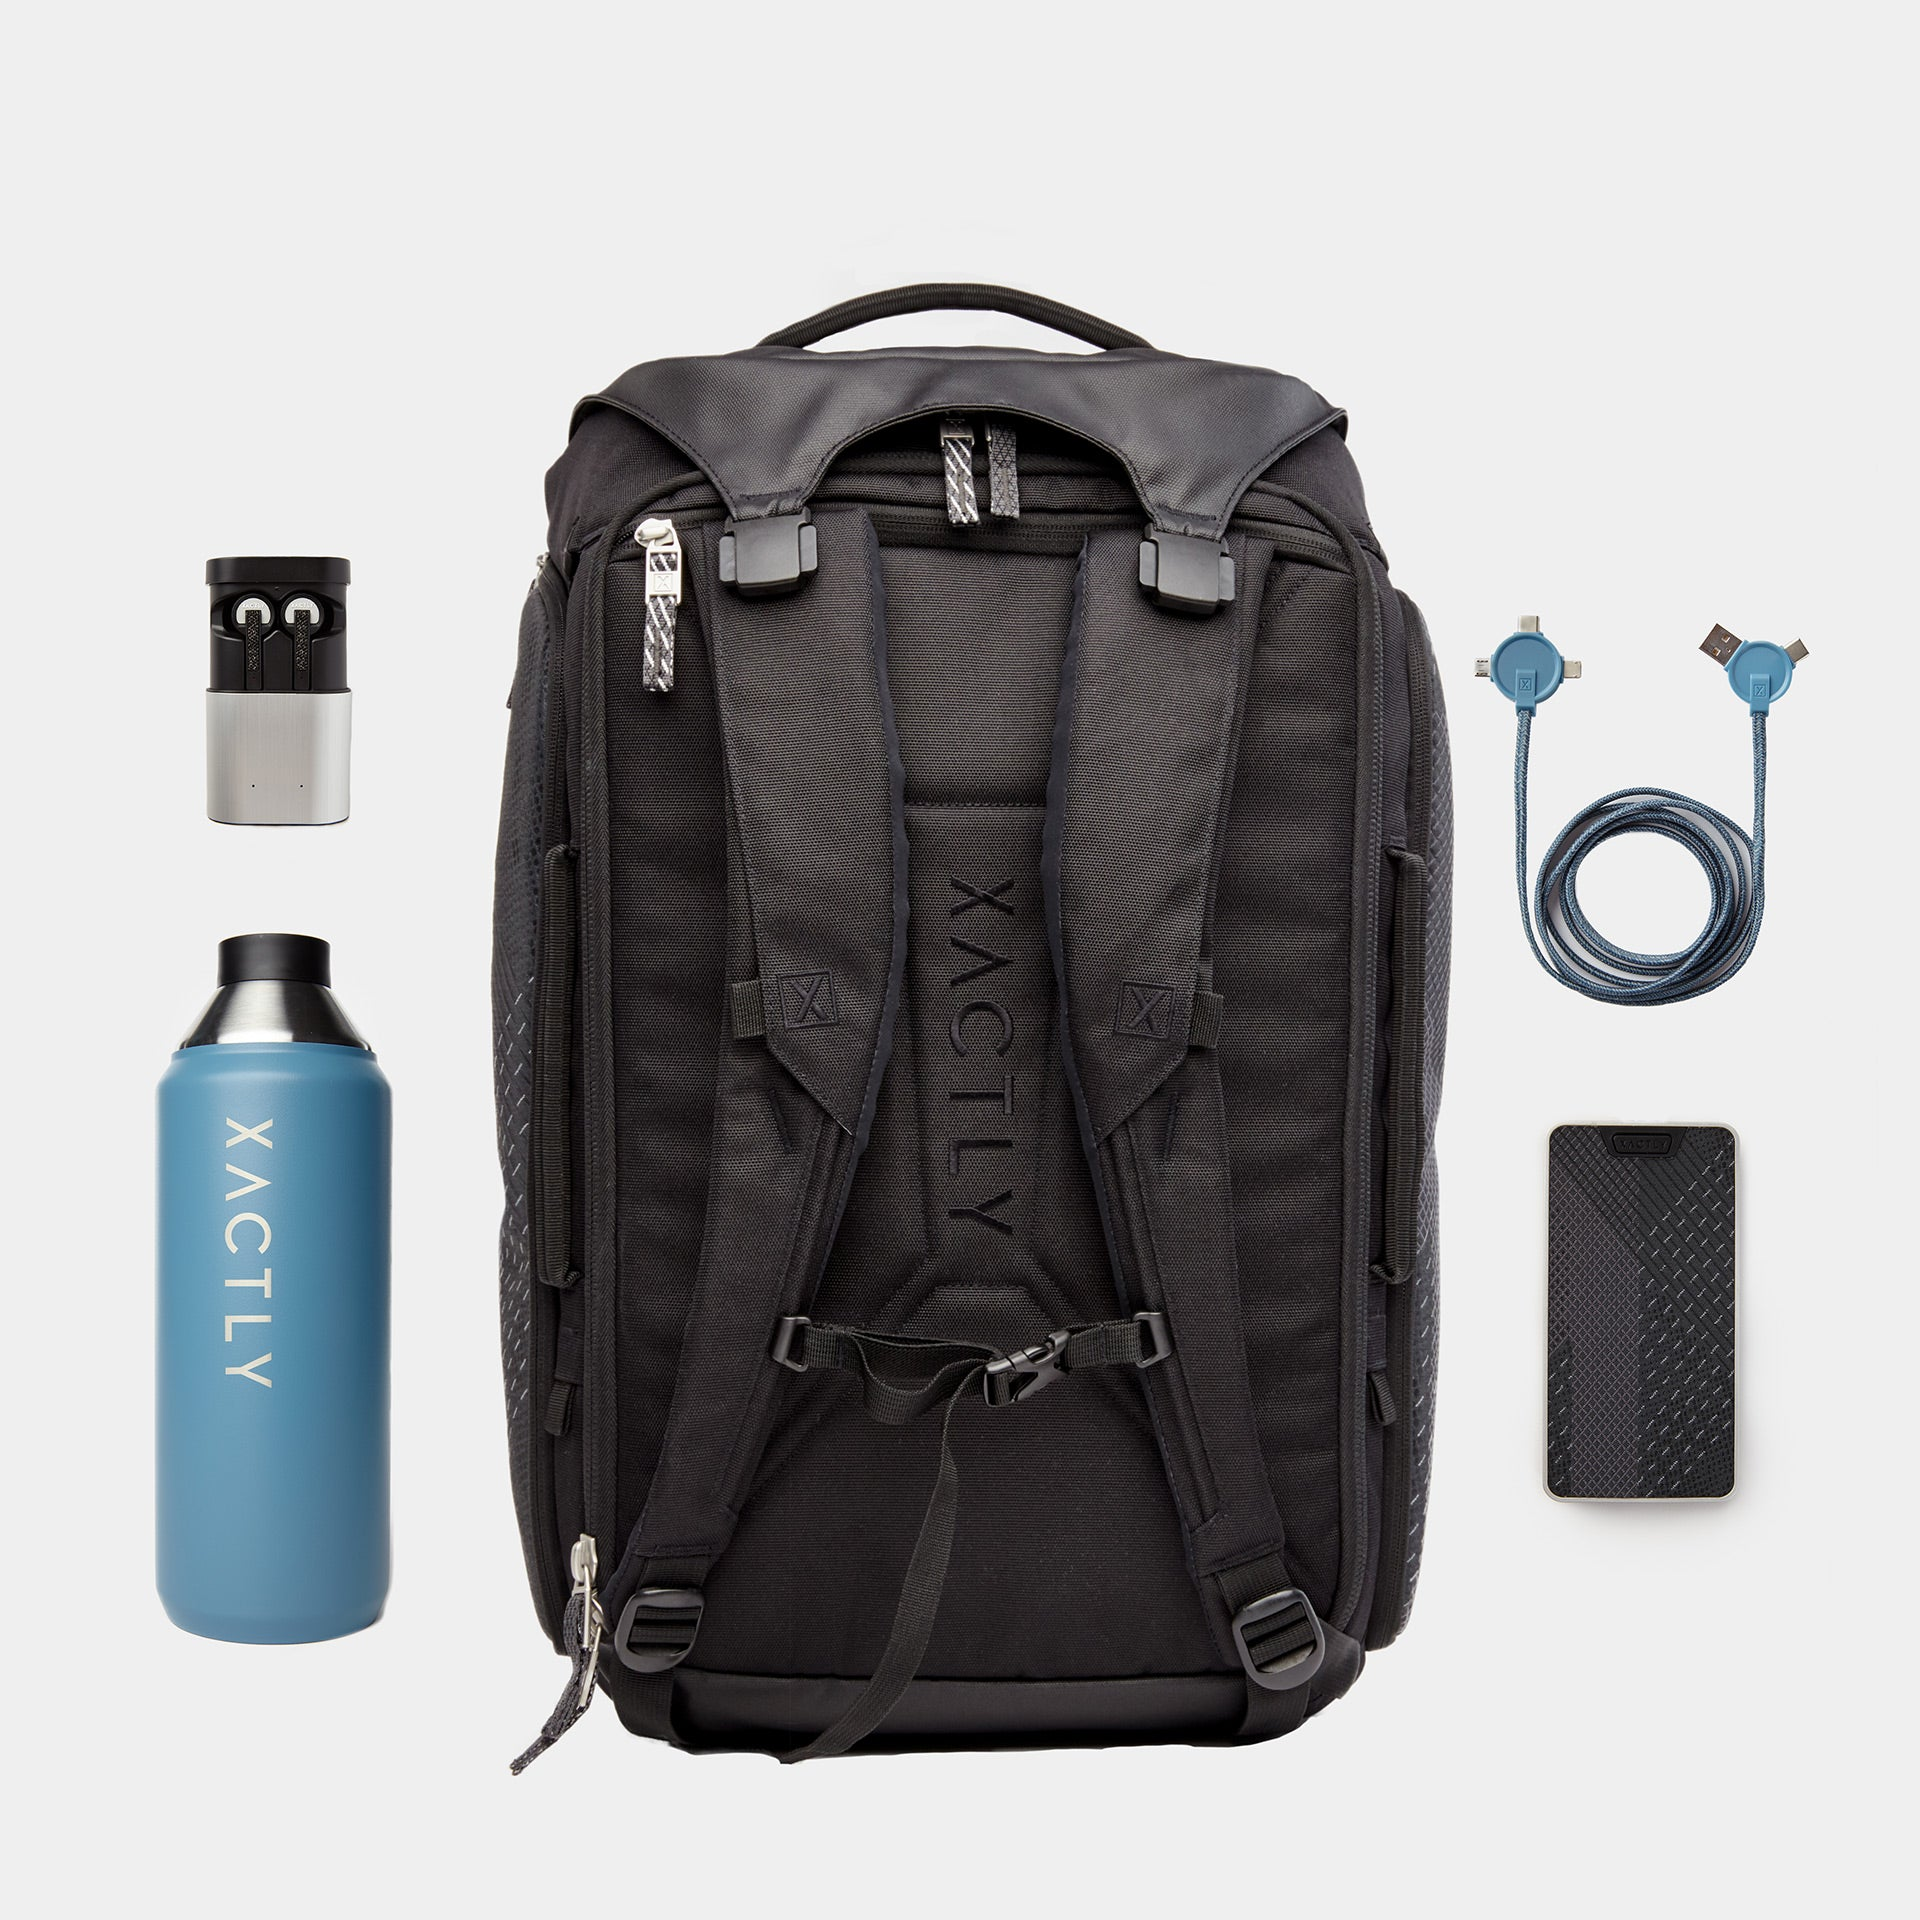 Oxygen 45 - Single Carry Bundle-XACTLY Life